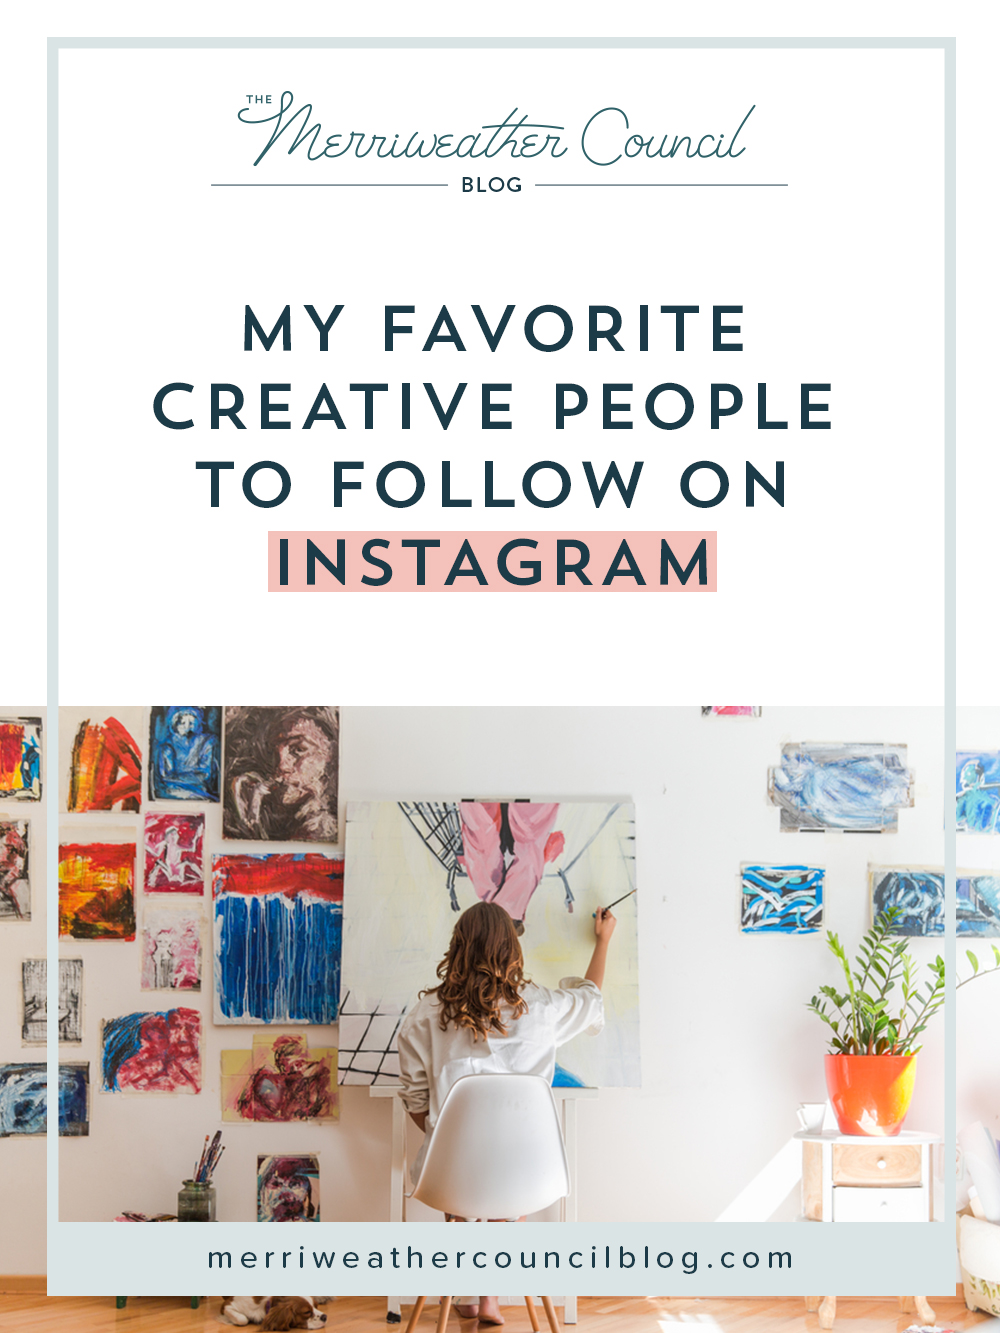 my favorite creative people to follow on Instagram | the merriweather council blog